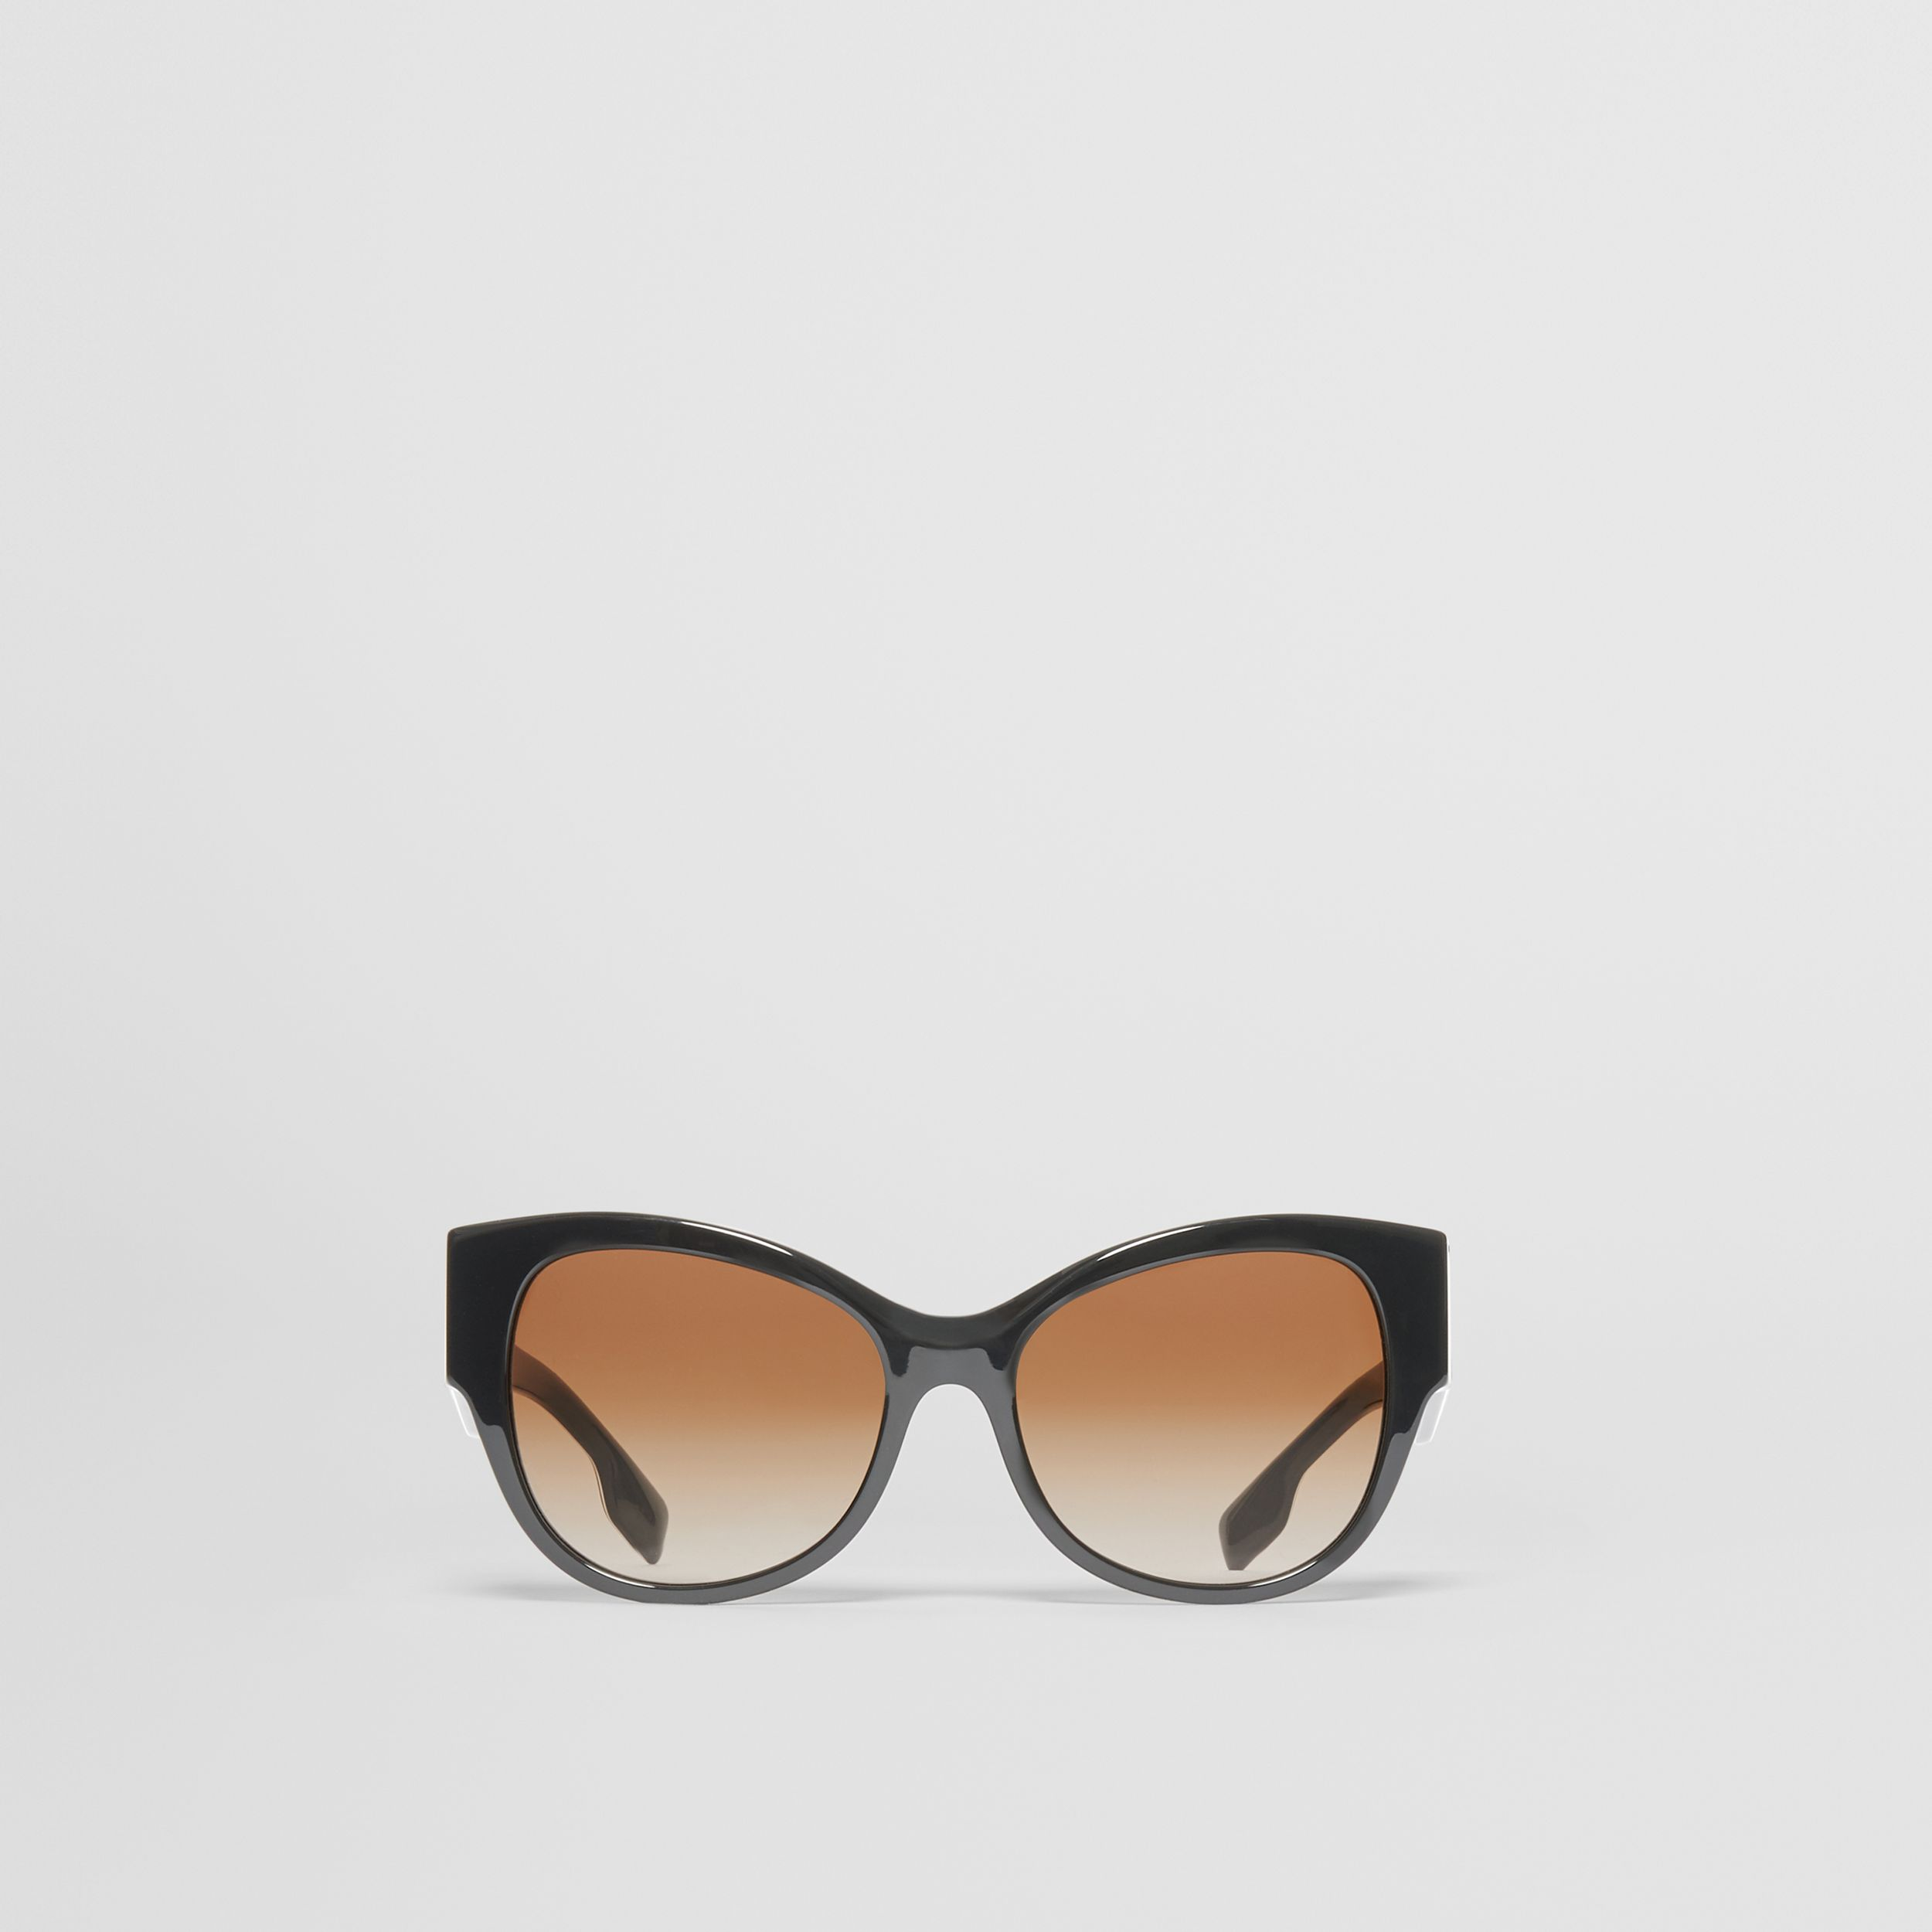 Monogram Detail Butterfly Frame Sunglasses in Black / Beige - Women | Burberry - 1